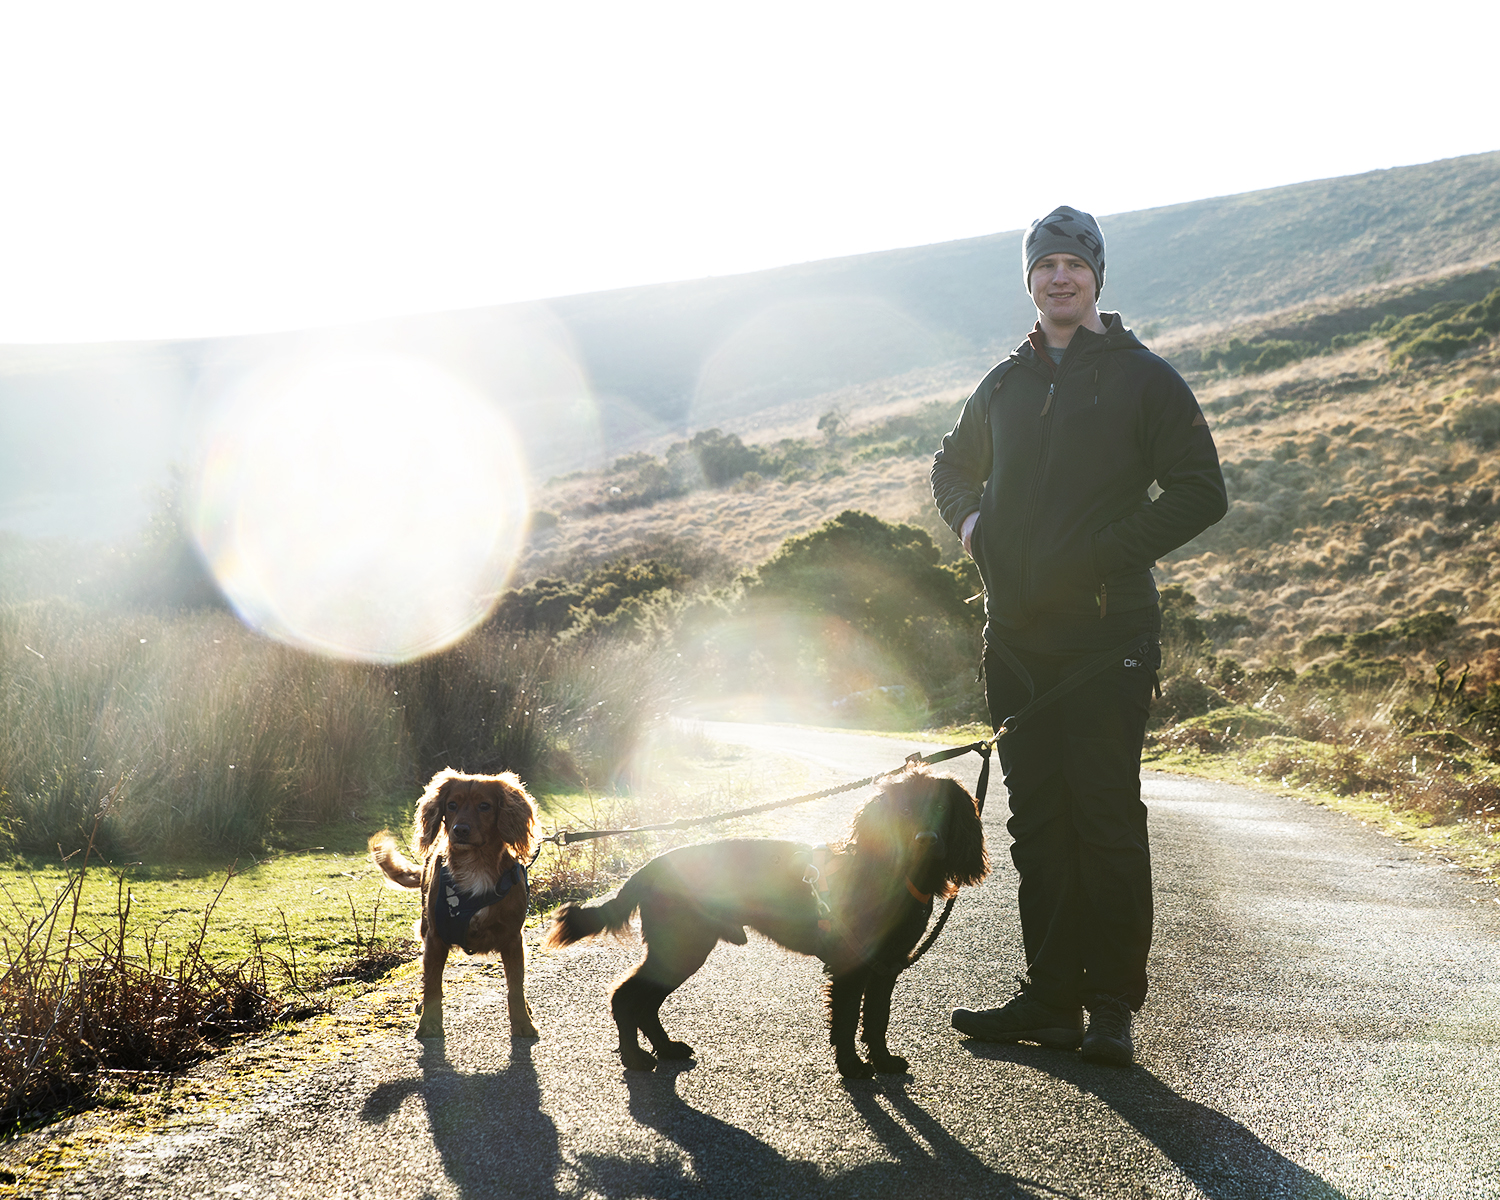 There are So Many Ways to Meet Outdoorsy People | Paws and Tors